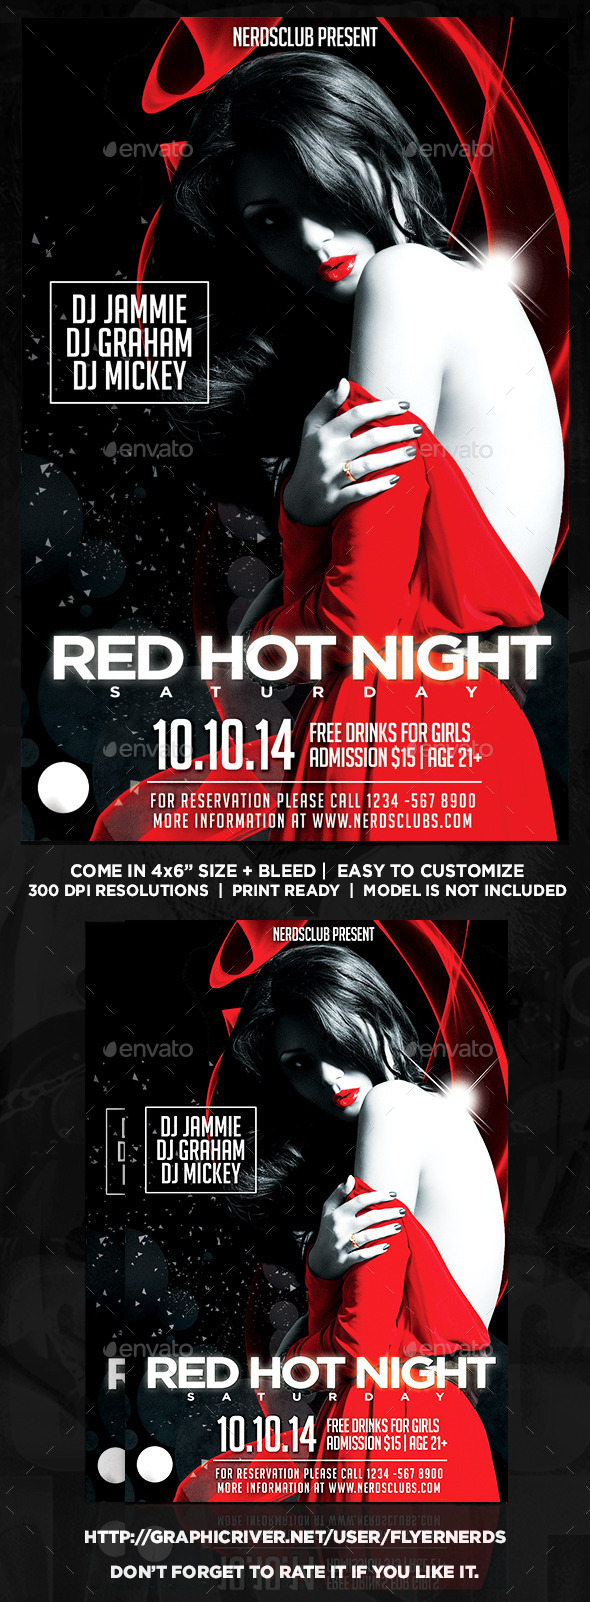 GraphicRiver Red Hot Night Party Flyer 8989911